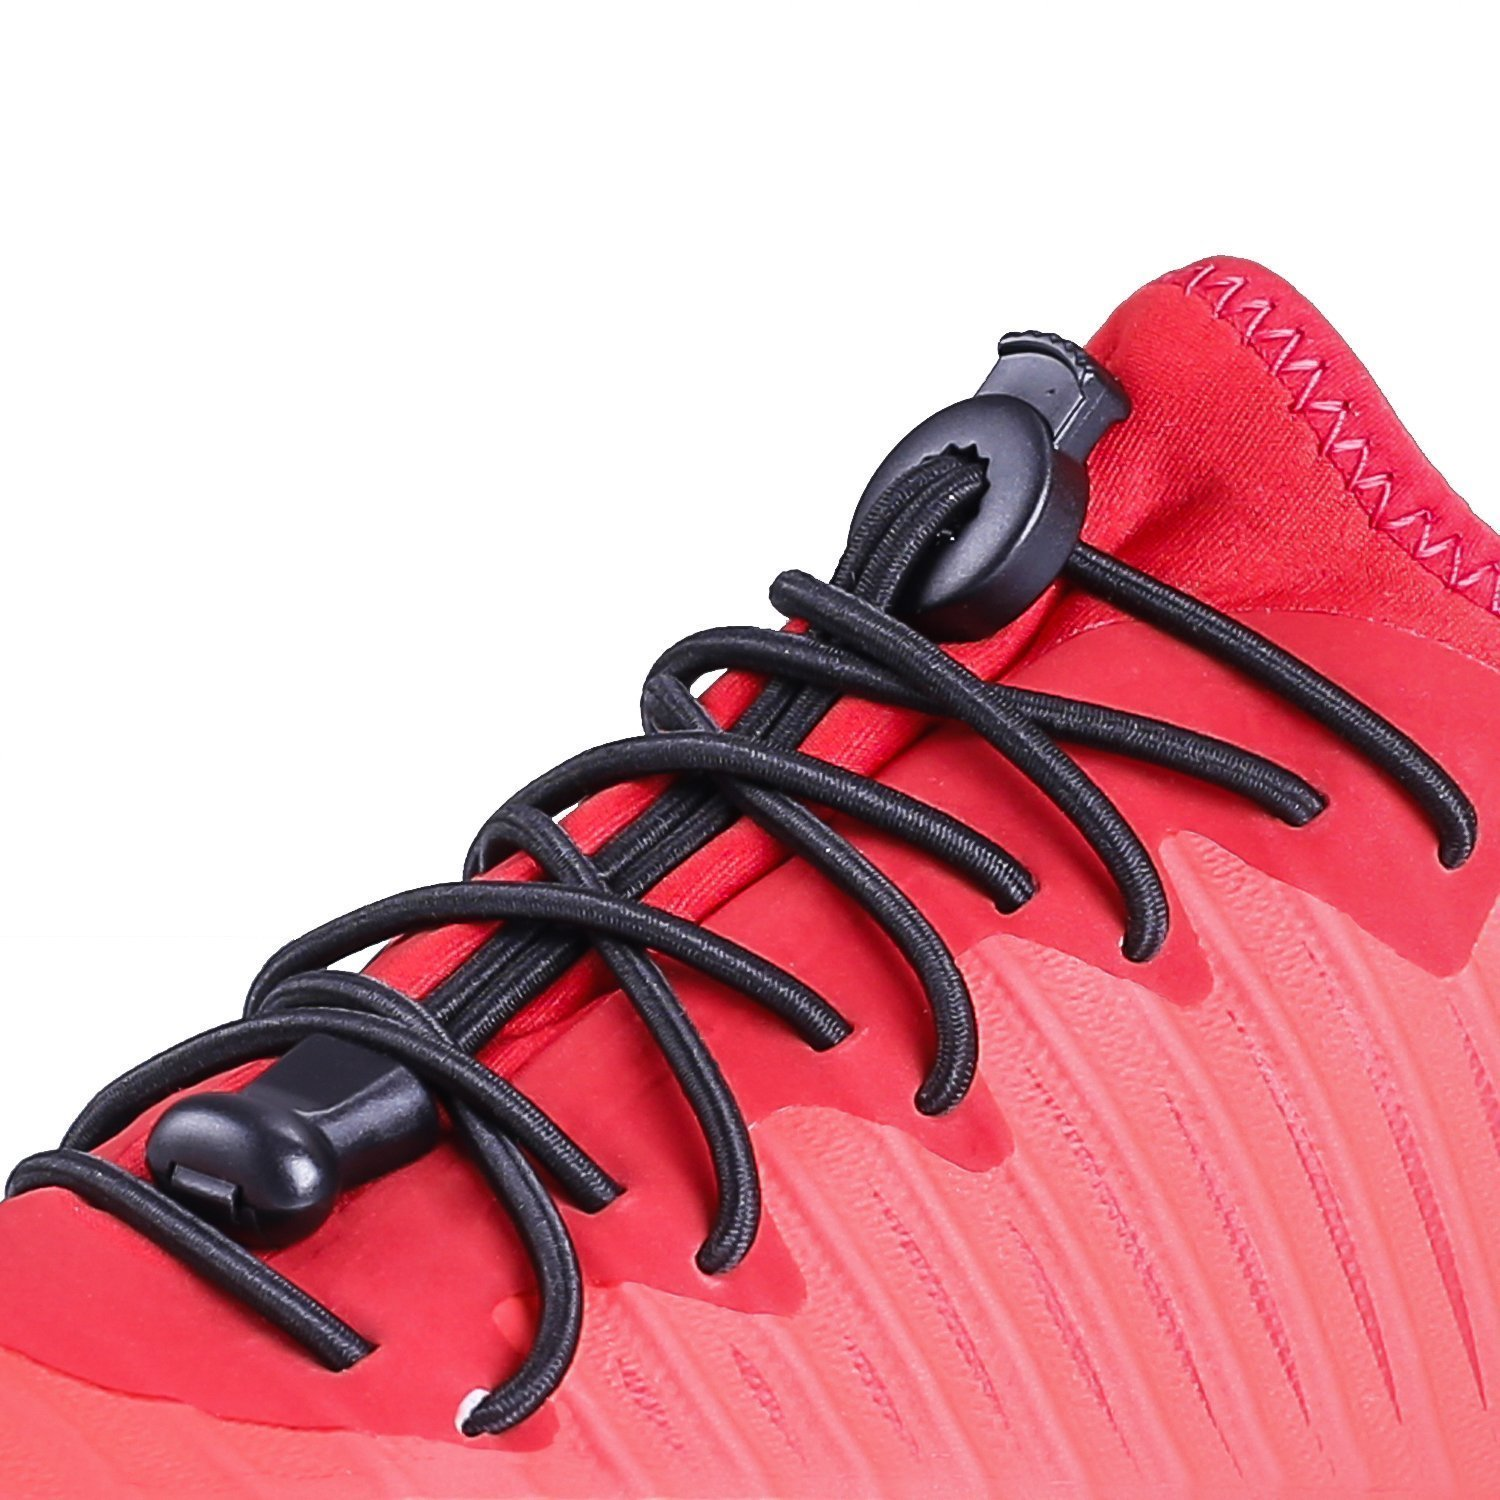 1 Pair Reflective One Pair Elastic No Tie Shoe Laces Lock Lace for Sneakers